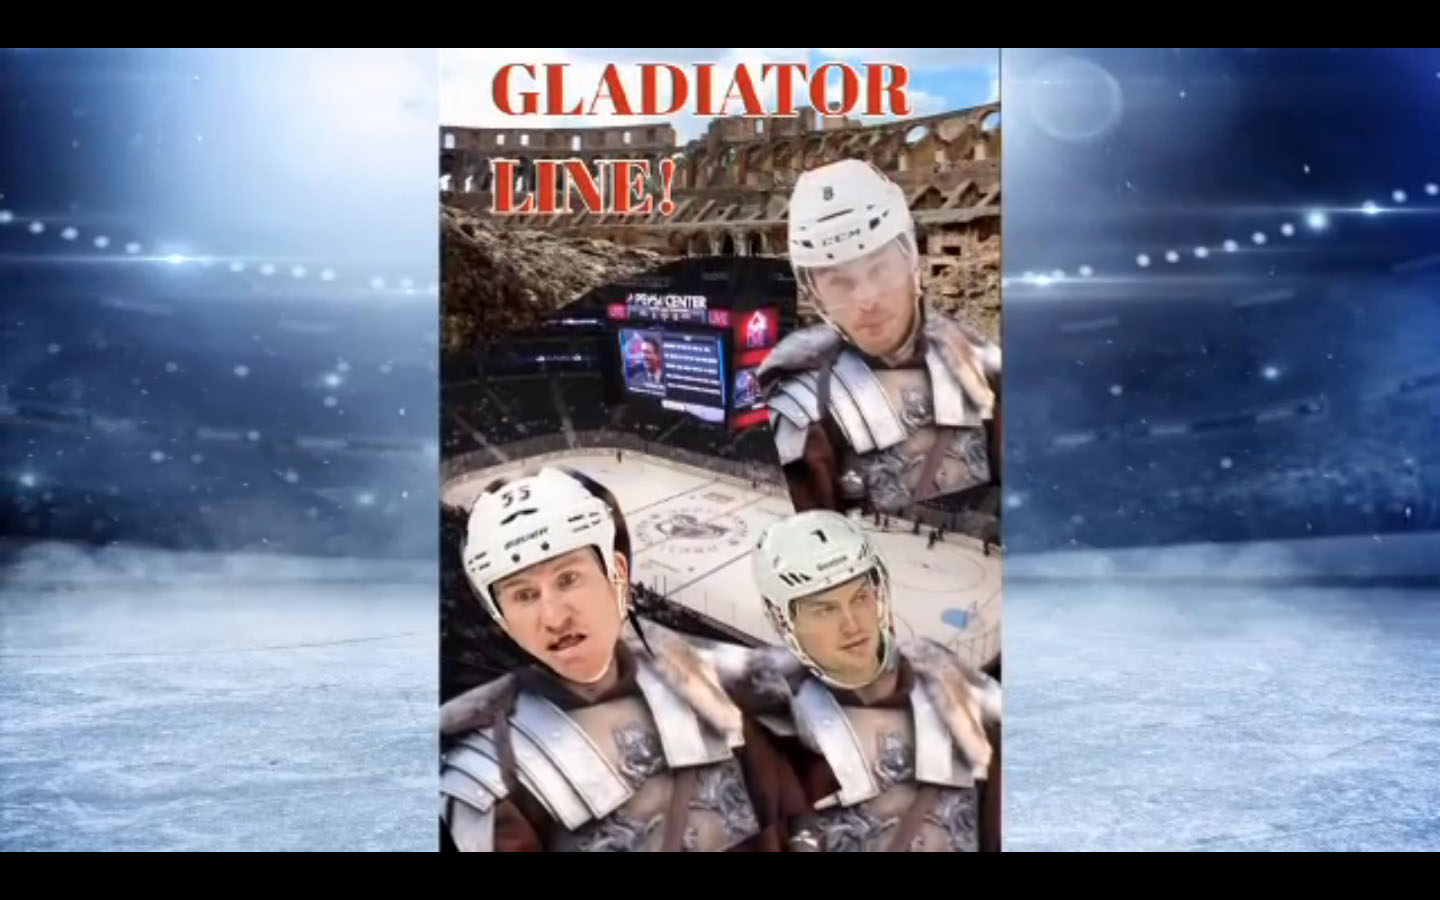 Colorado-Avalanche-Gladiator-Line.jpg